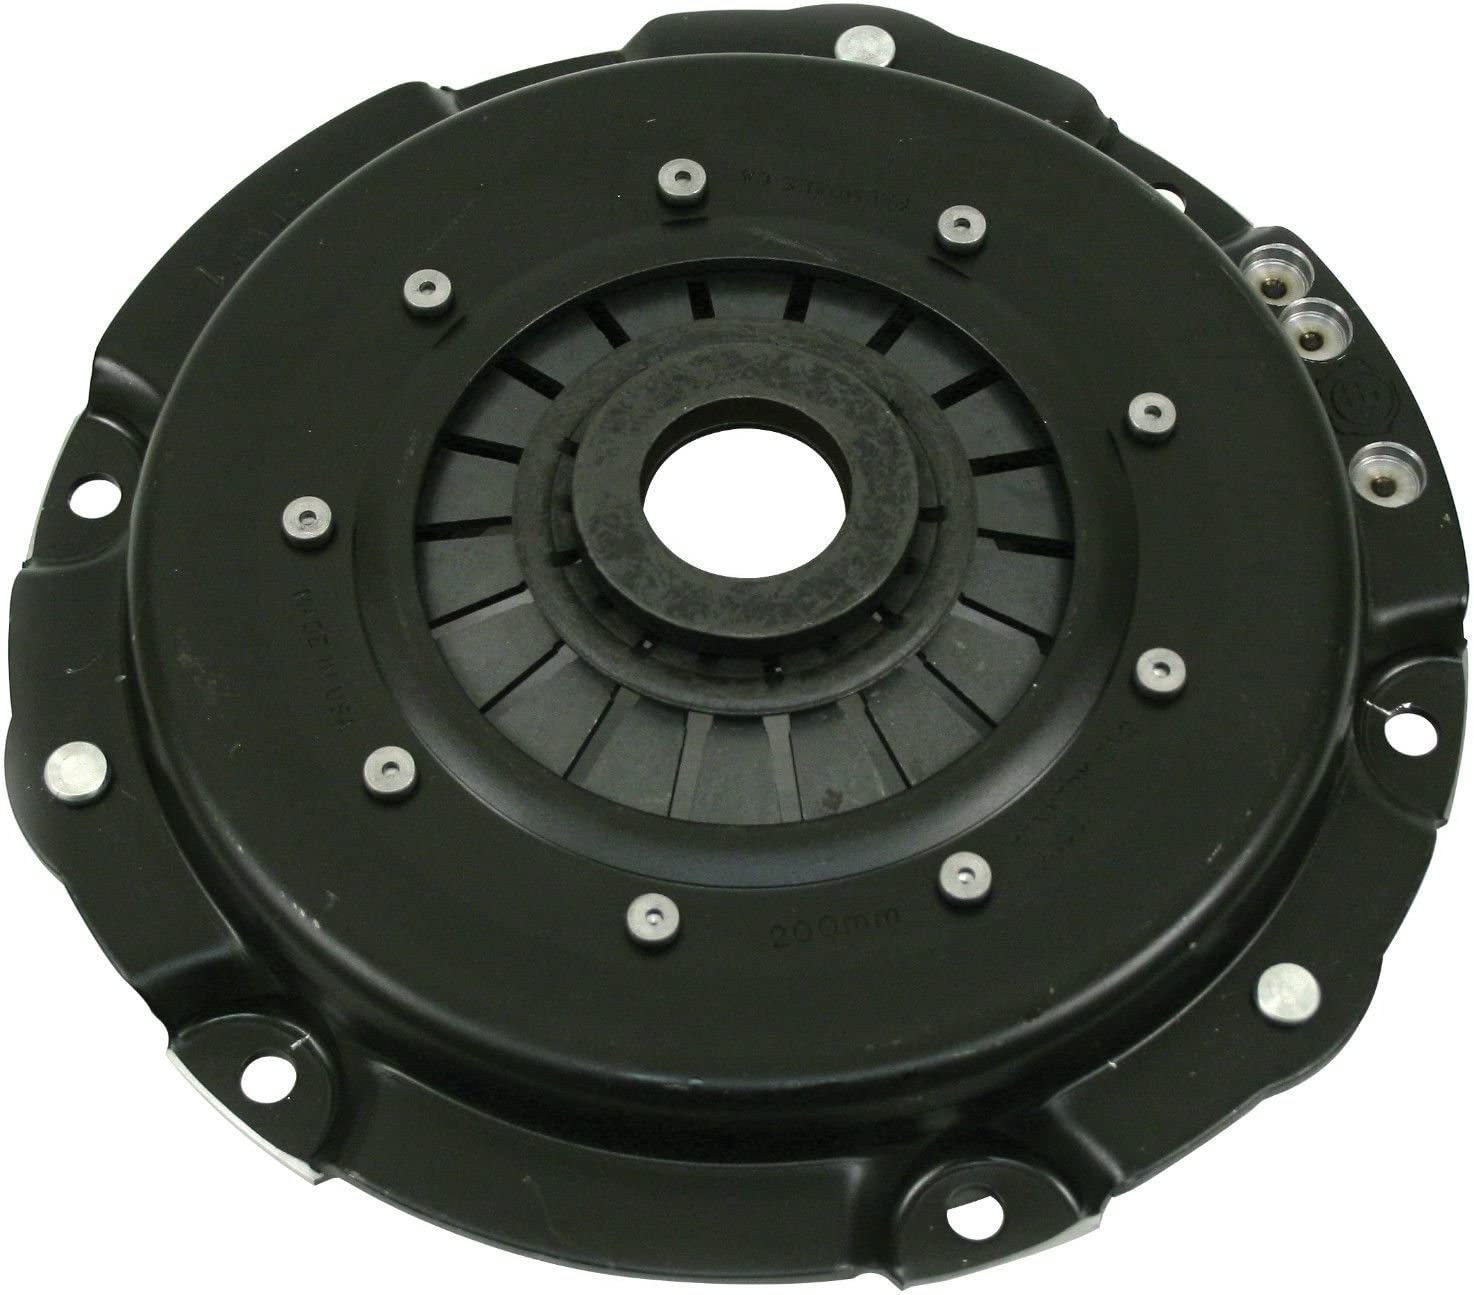 4092-0 K.E.P. Kennedy Performance Clutch Purchase Presur 2100 Super popular specialty store 2 Stage LB